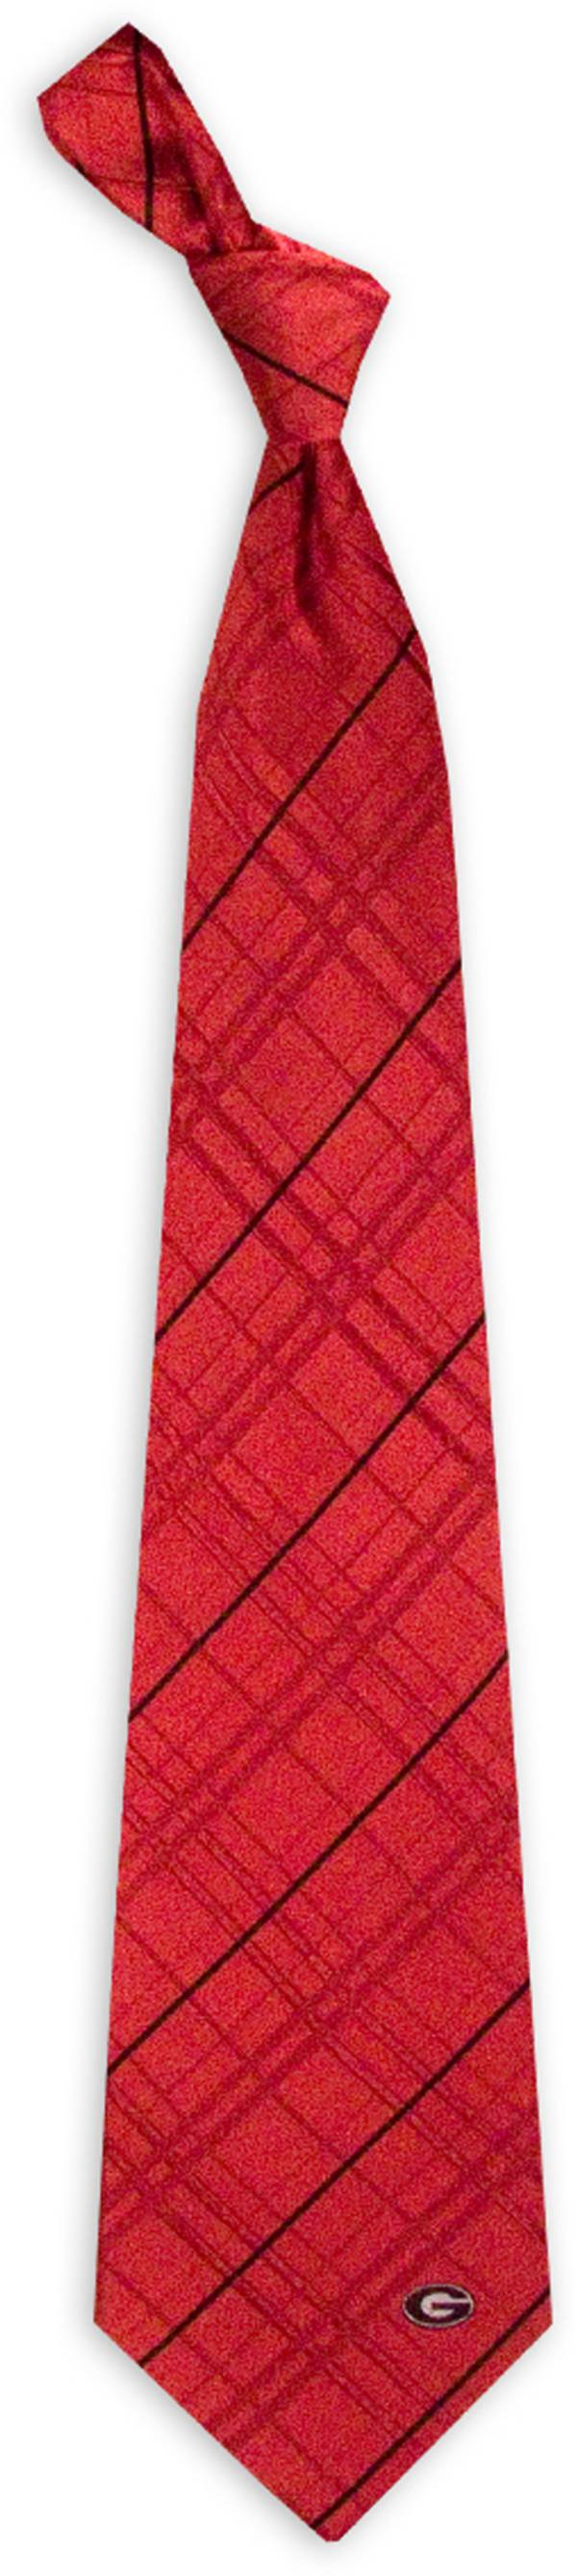 Eagles Wings Georgia Bulldogs Woven Oxford Necktie product image